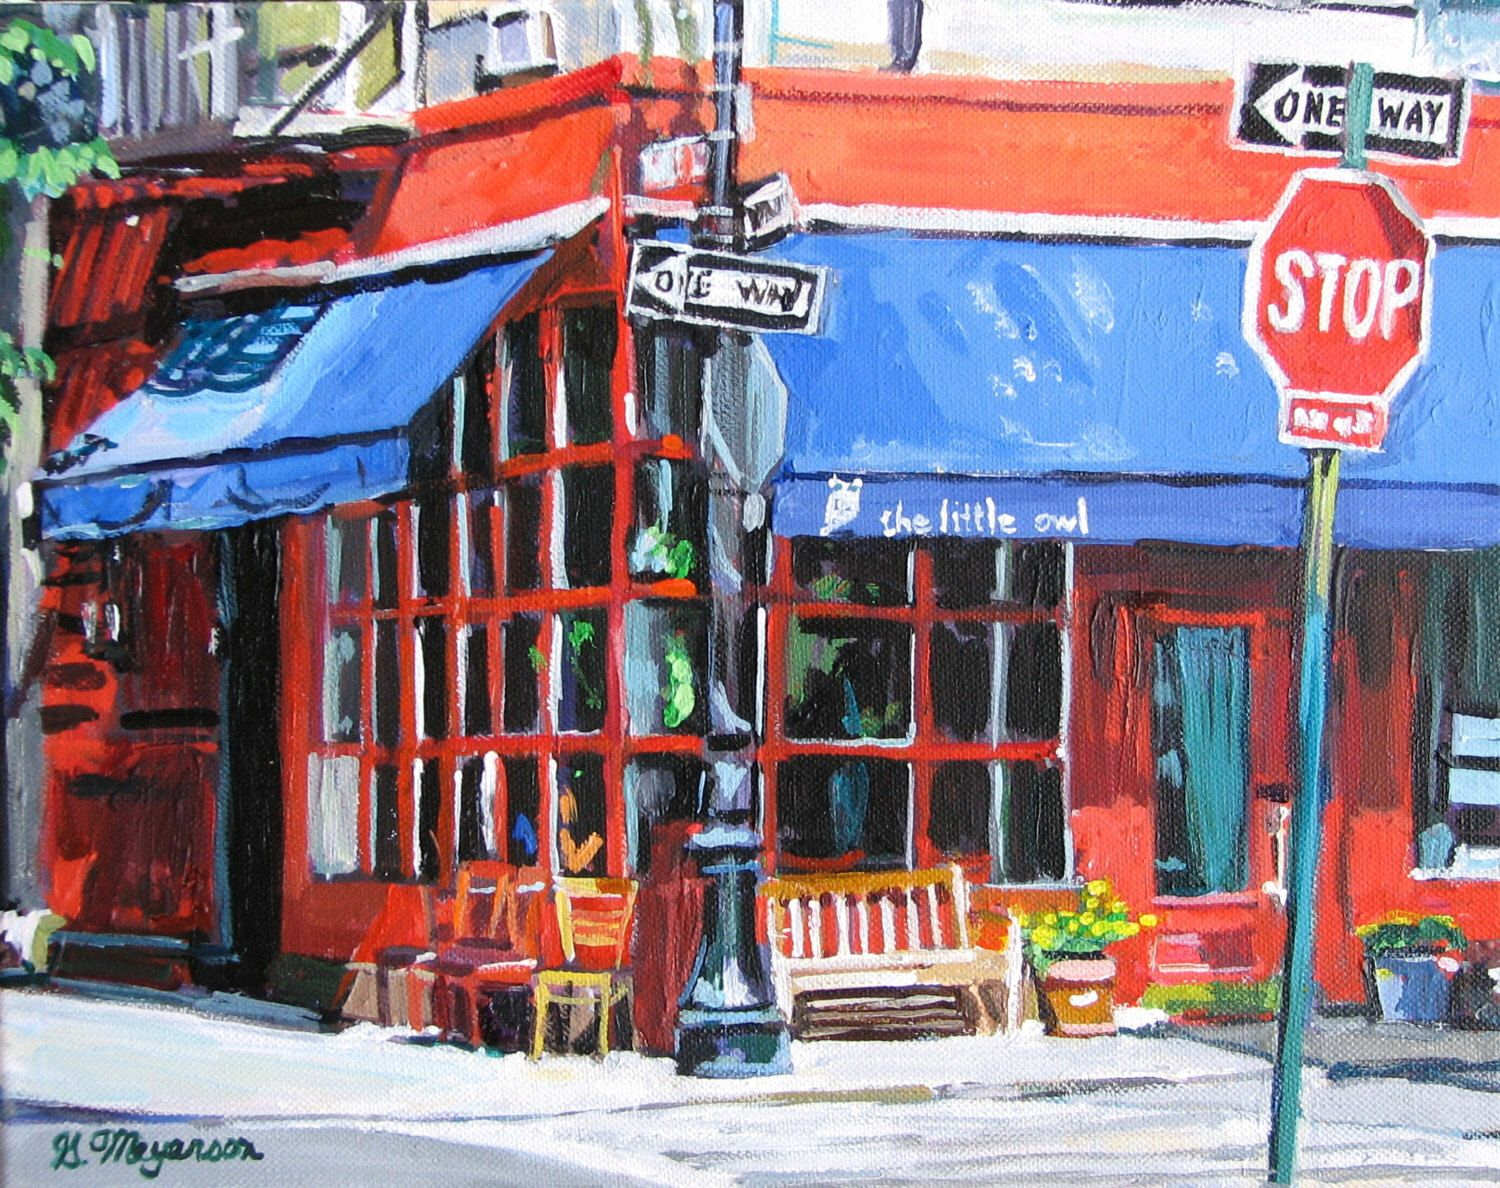 NYC Painting New York Art Little Owl  Cafe Greenwich Village Wall     NYC Painting New York Art Little Owl  Cafe Greenwich Village Wall Decor  Print red and